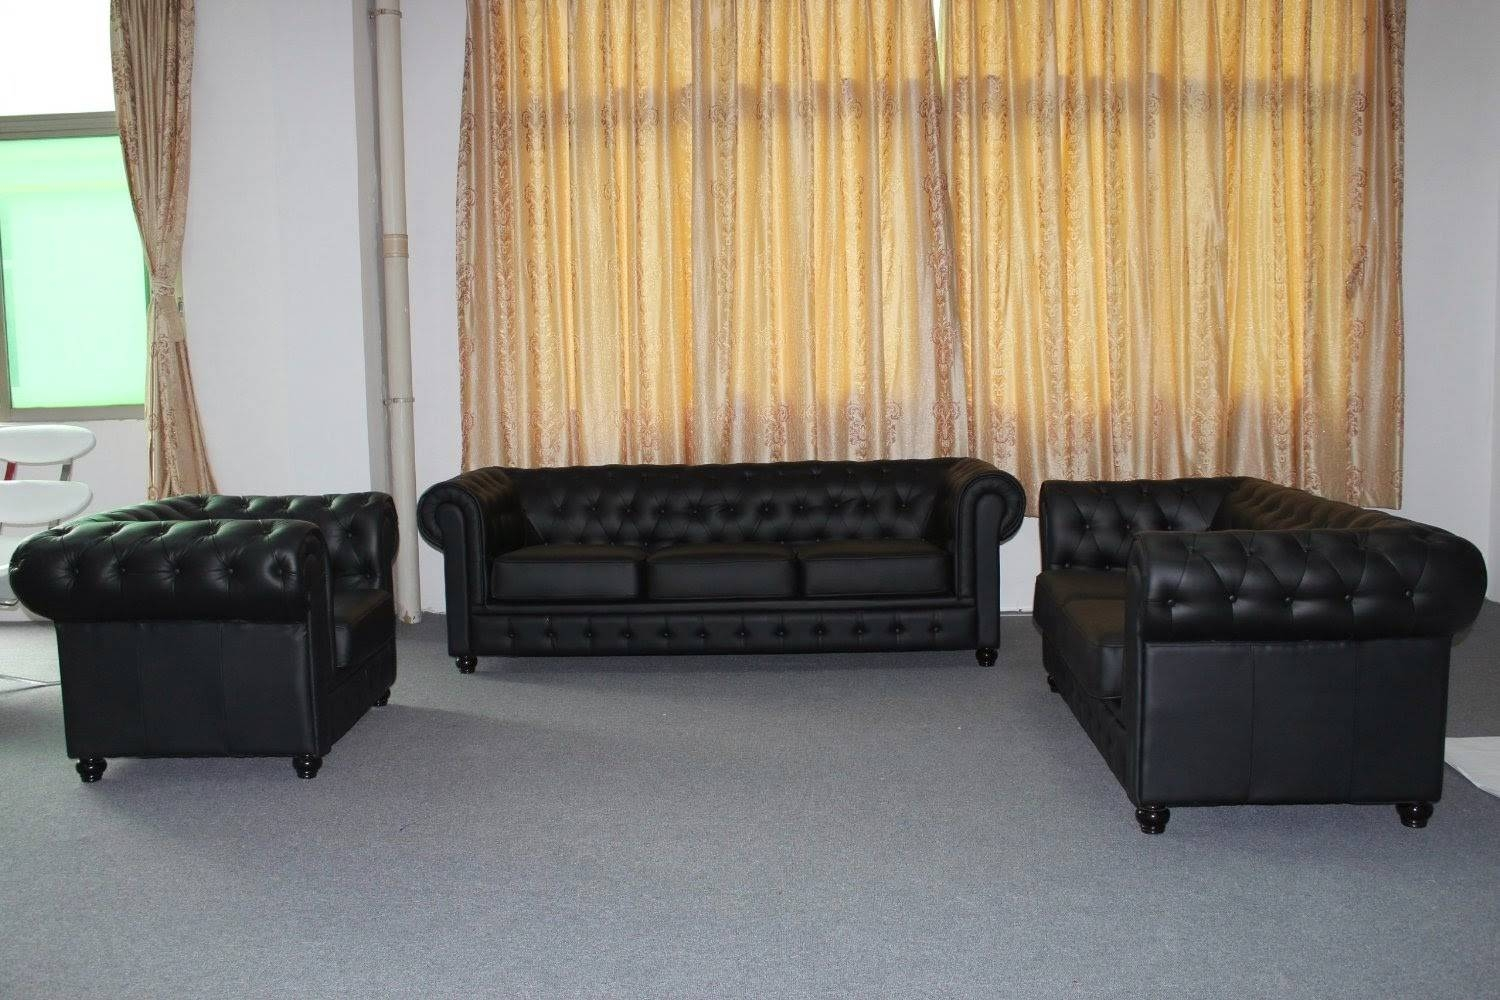 Chesterfield Sofa: Modern Chesterfield Sofa inside Chesterfield Black Sofas (Image 10 of 30)